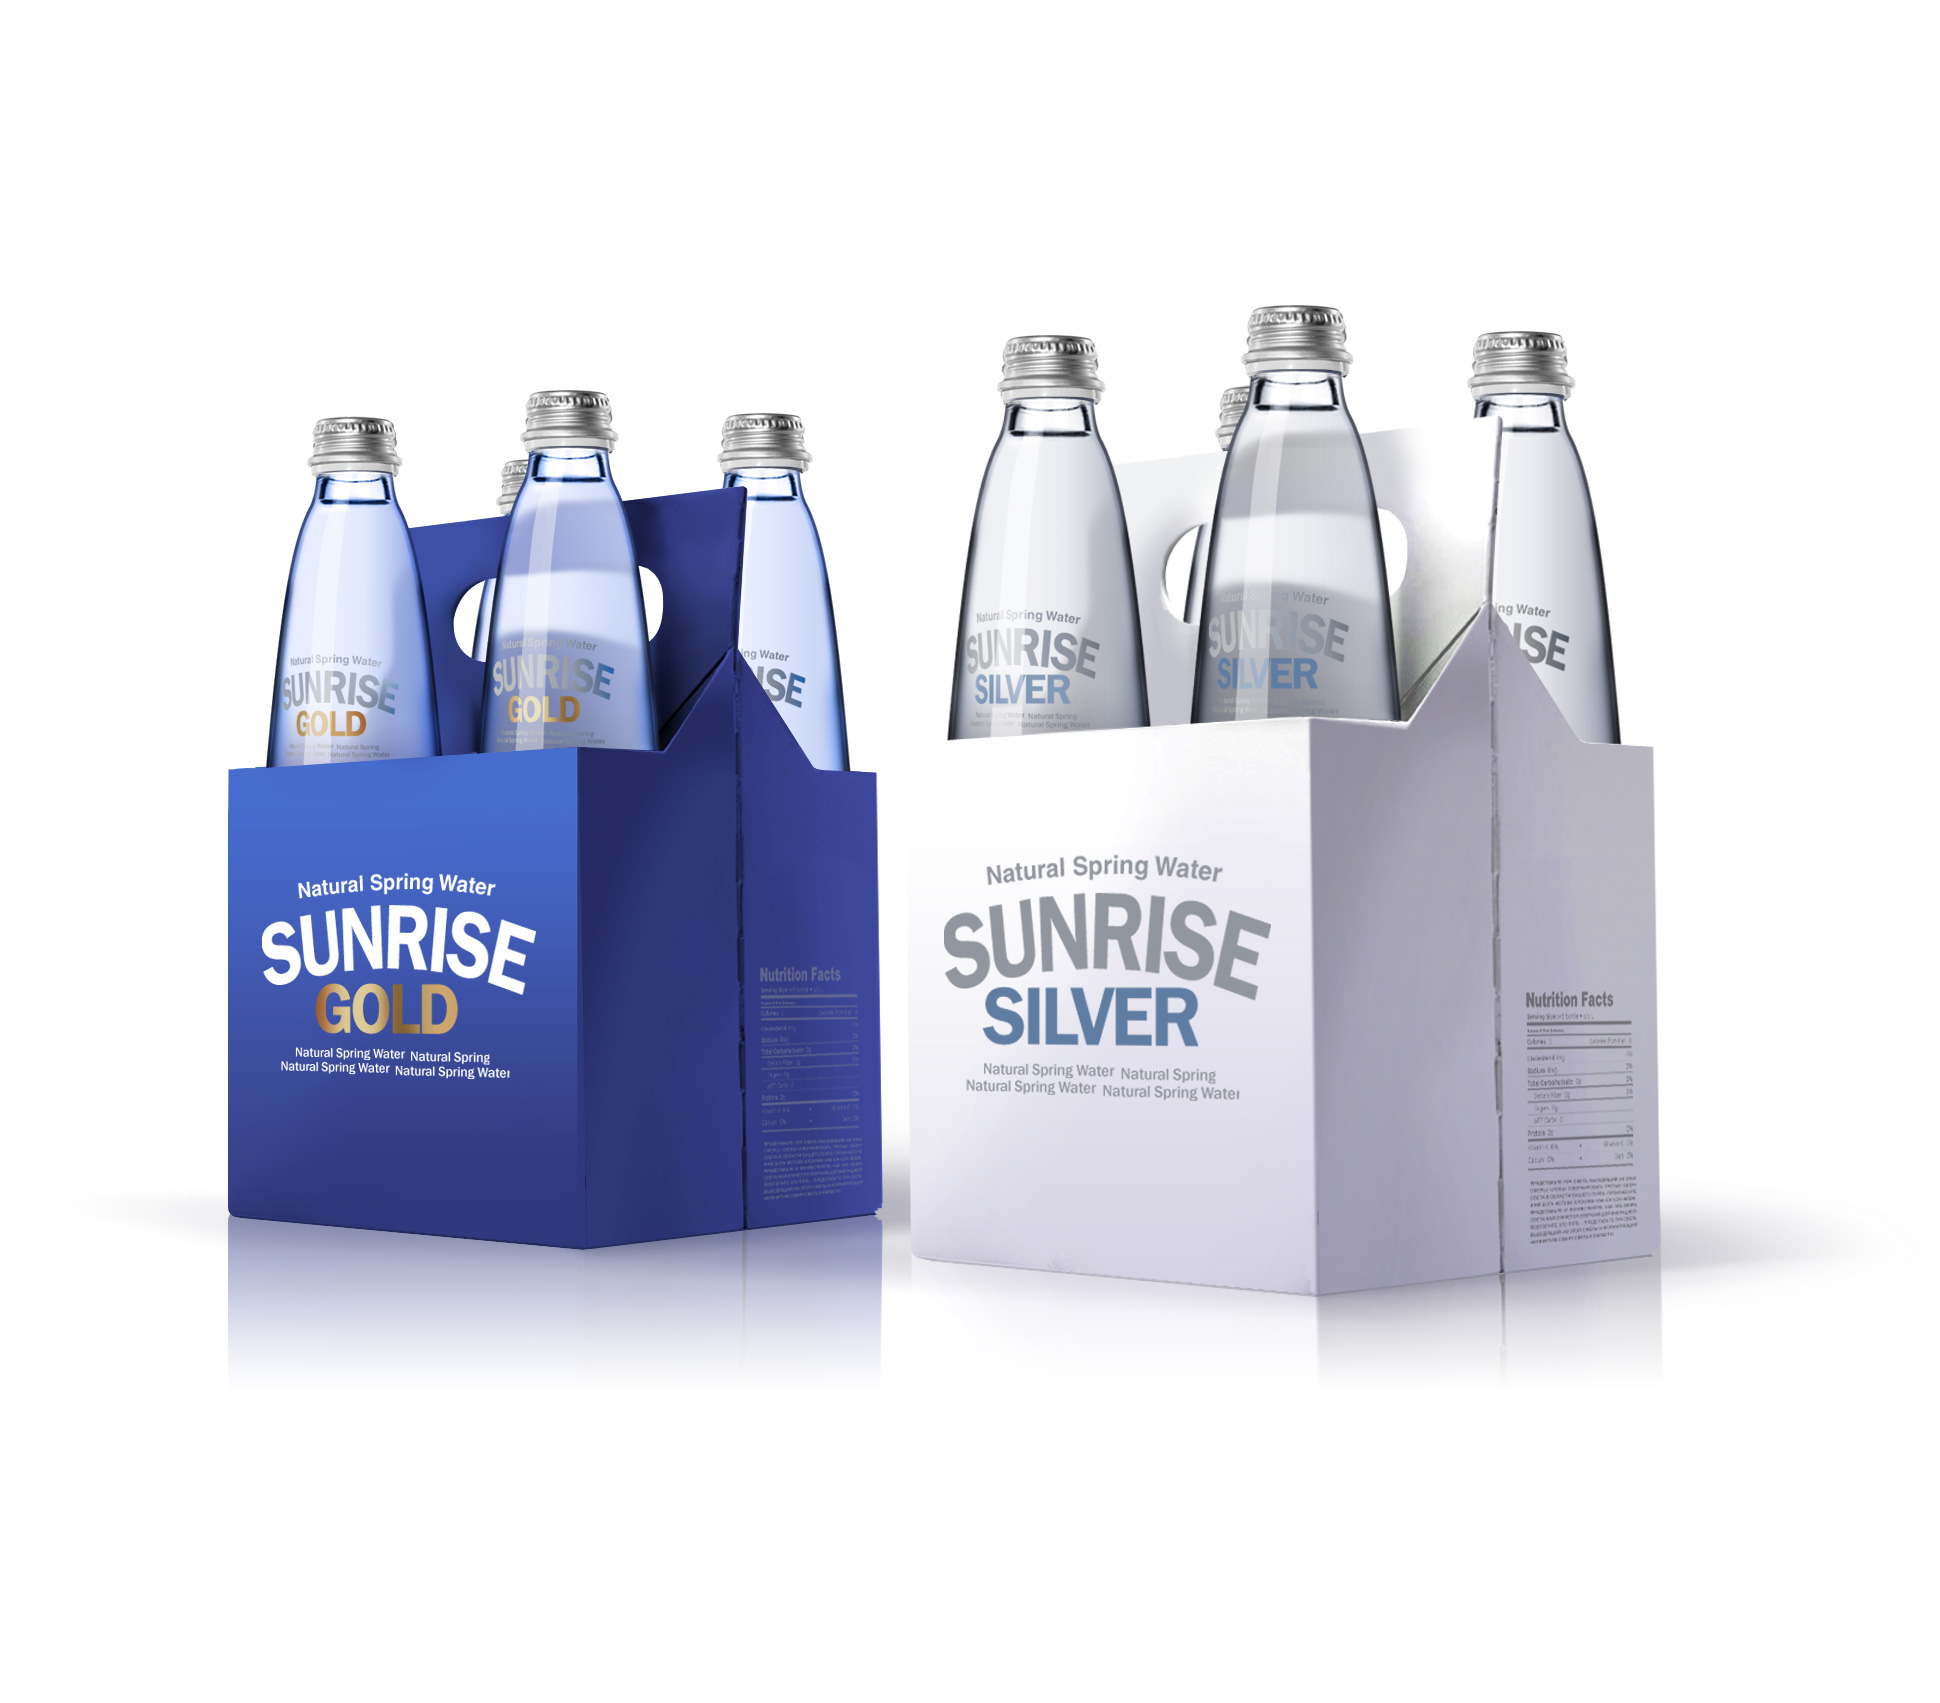 Sunrise Natural Spring Water